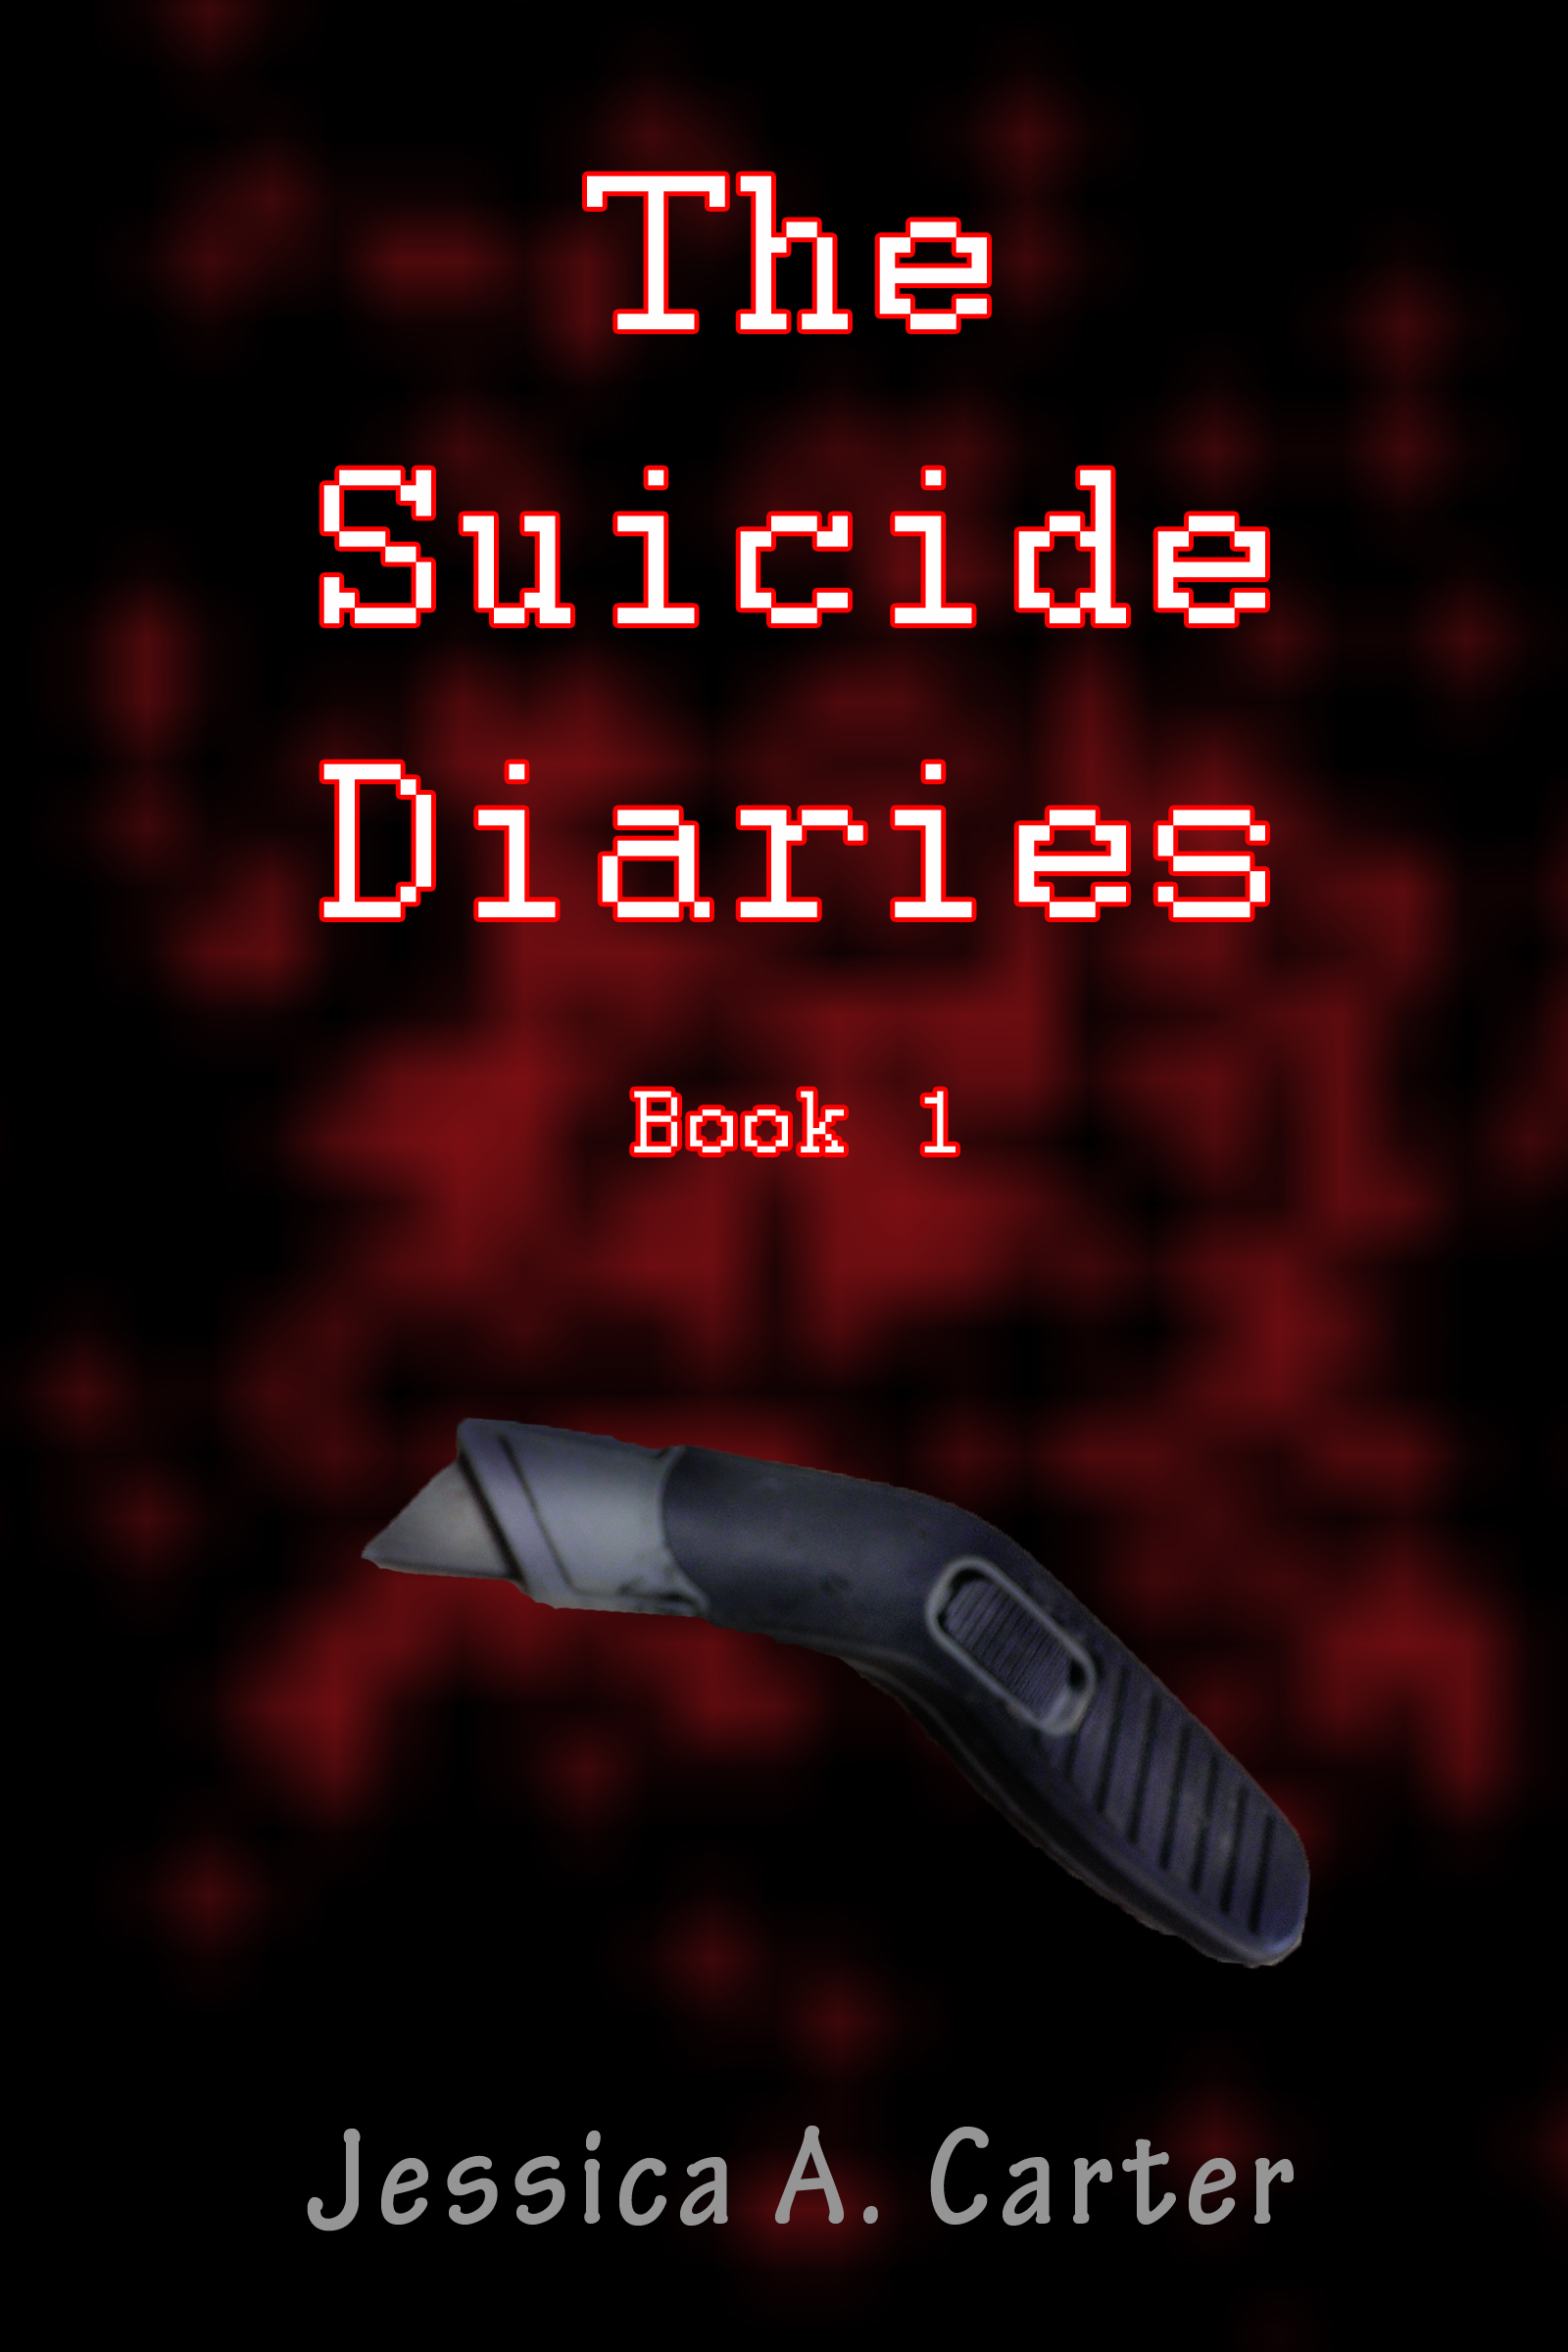 The Suicide Diaries (Book 1) (sst-cccxv)